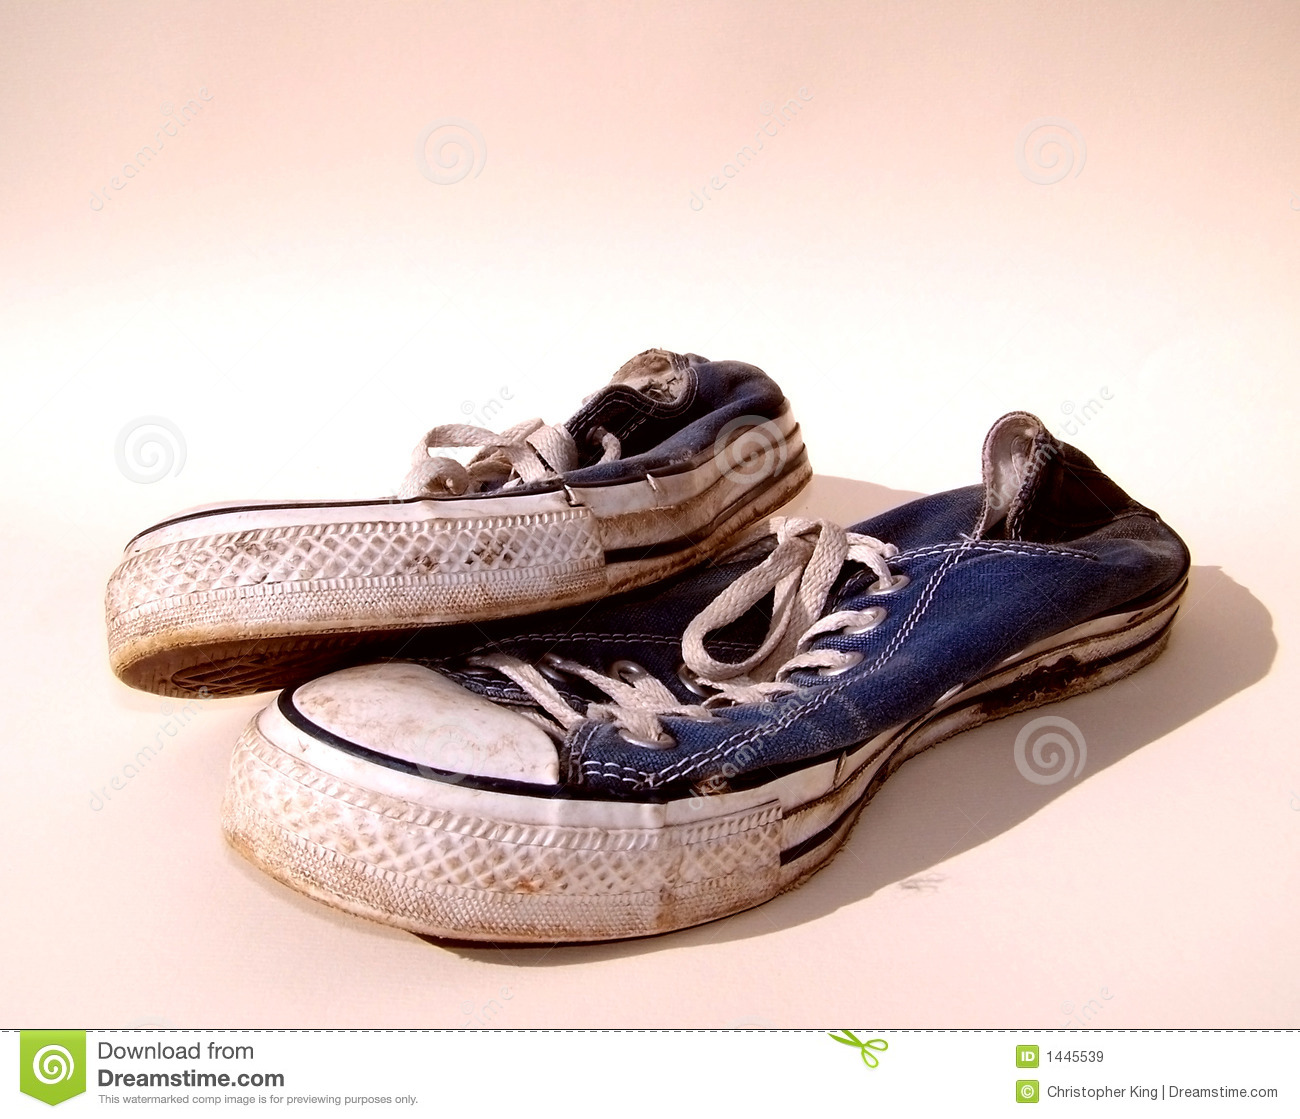 Dirty Trainers Sneakers Stock Images - Download 431 Royalty Free Photos 5642d0796